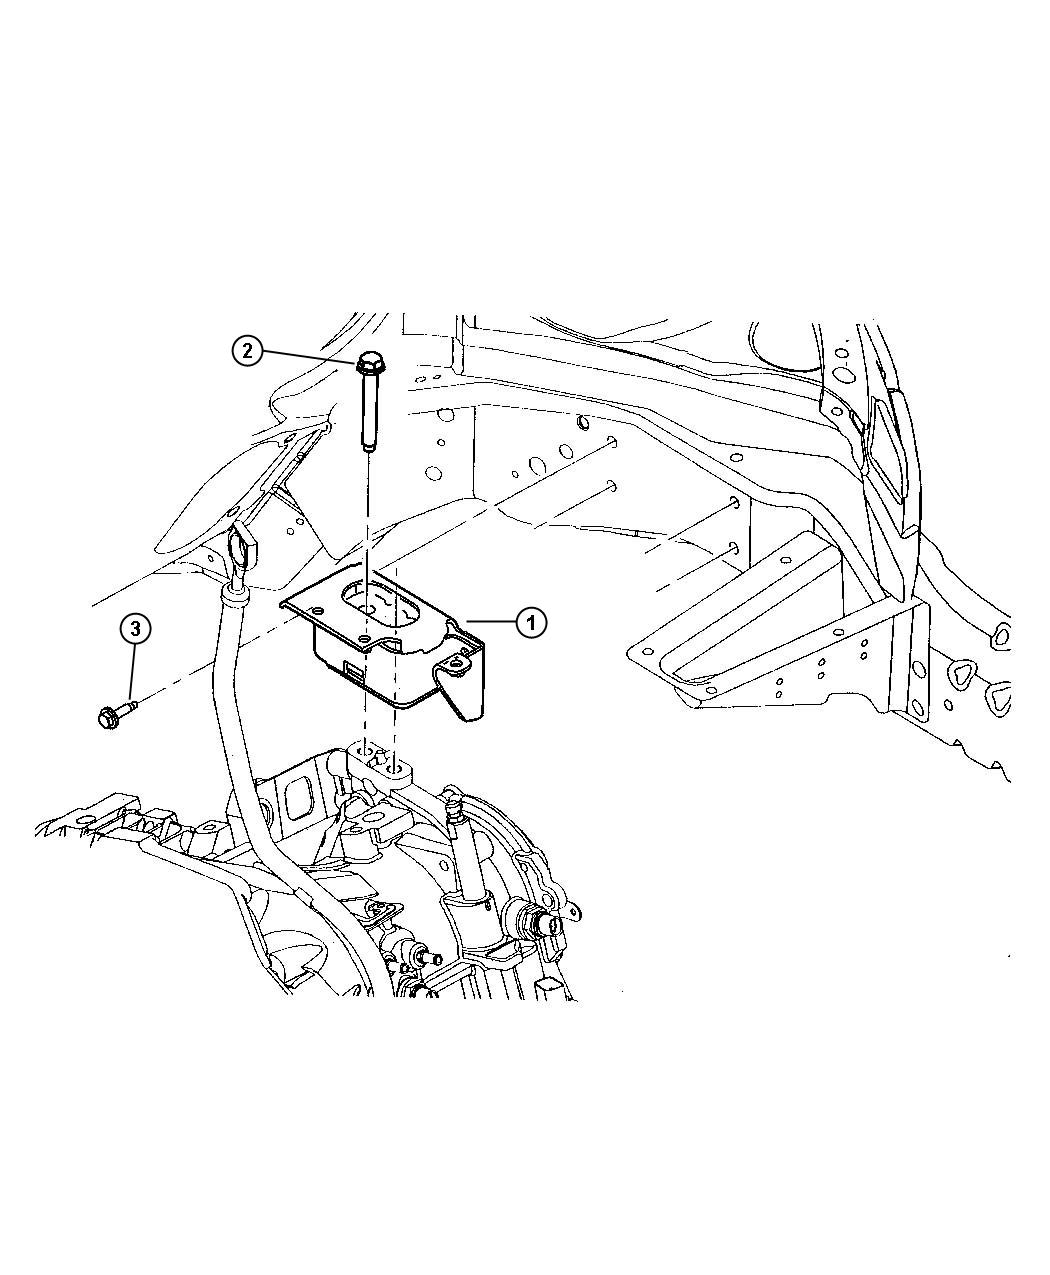 Chrysler Town & Country Support. Engine mount. Left. Body